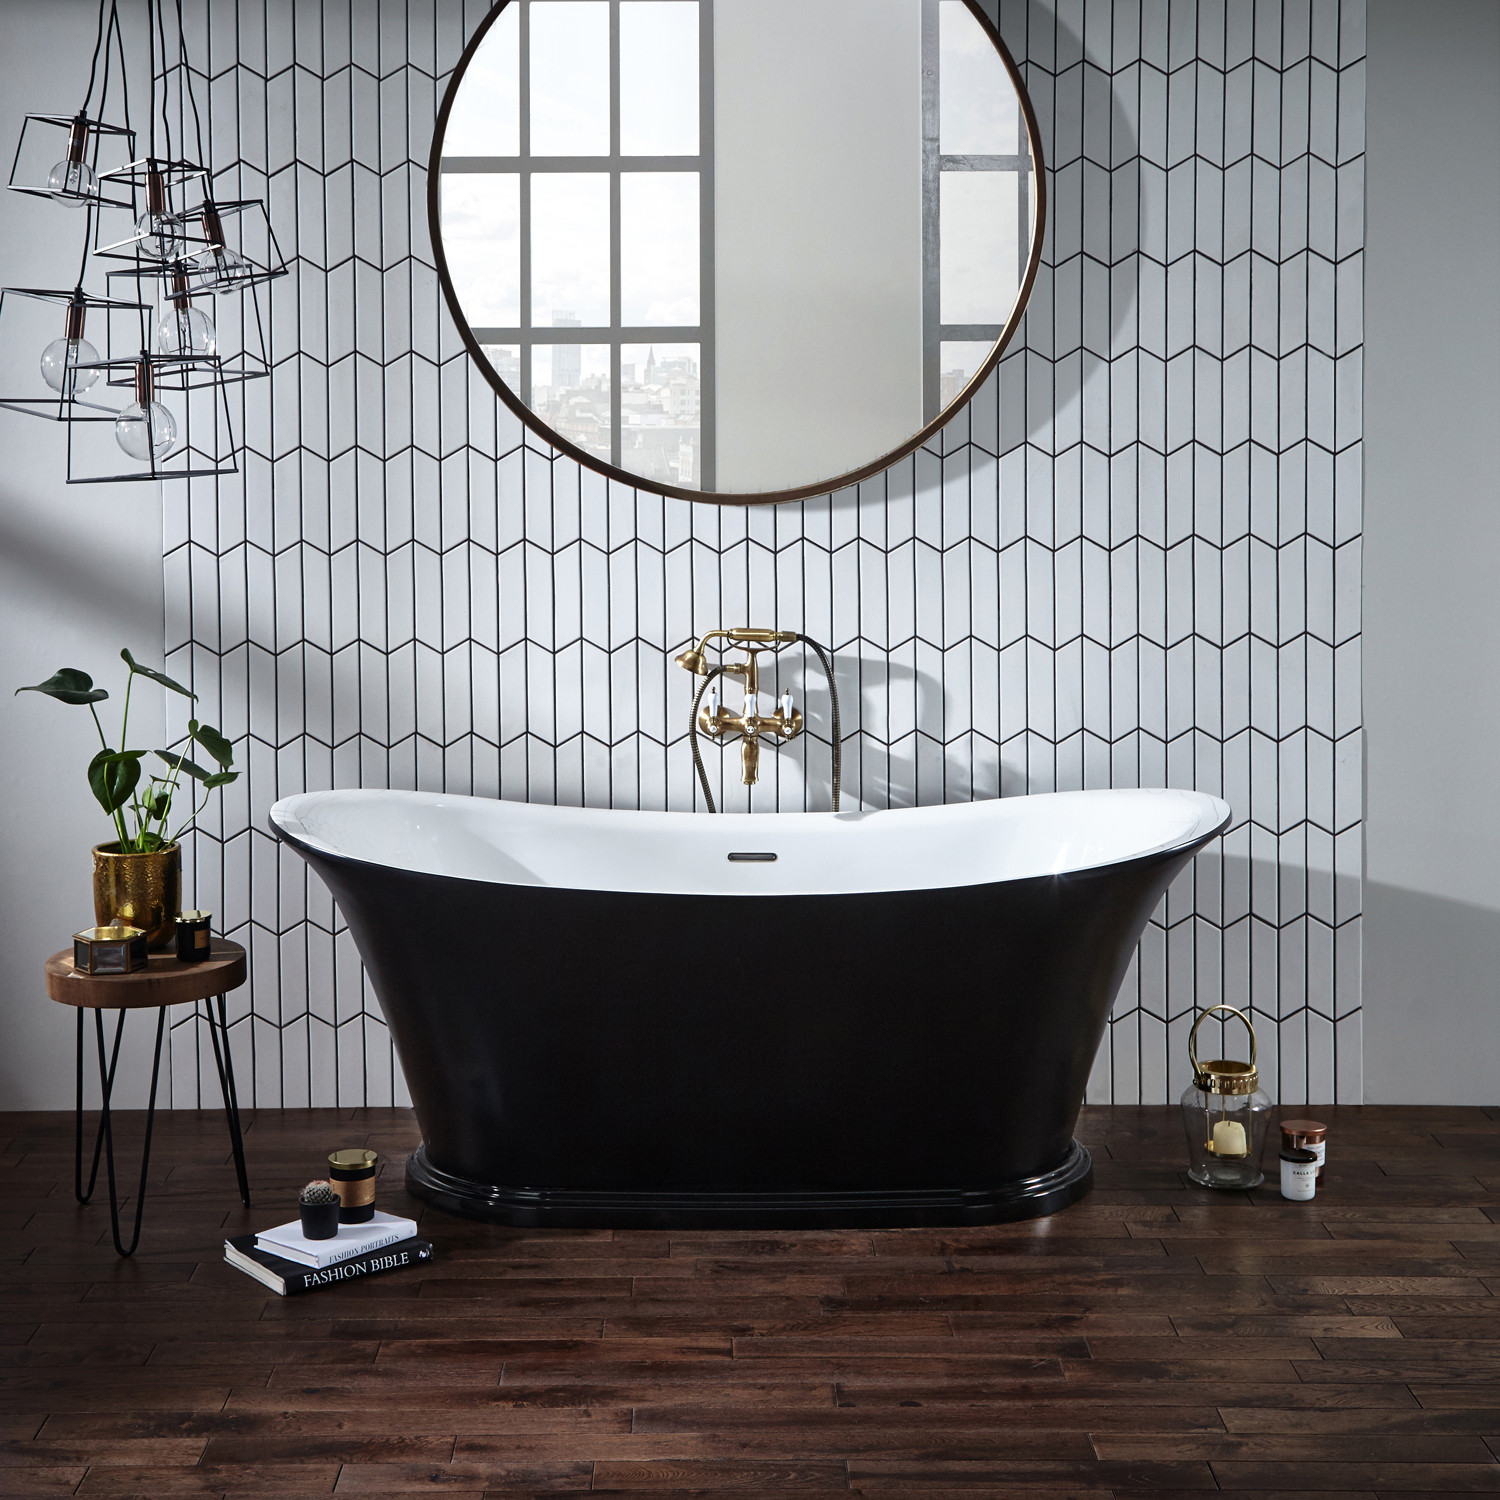 Verona Bow Graphite Traditional Freestanding Bath 1800mm x 800mm integrated Waste and Black Plinth-1